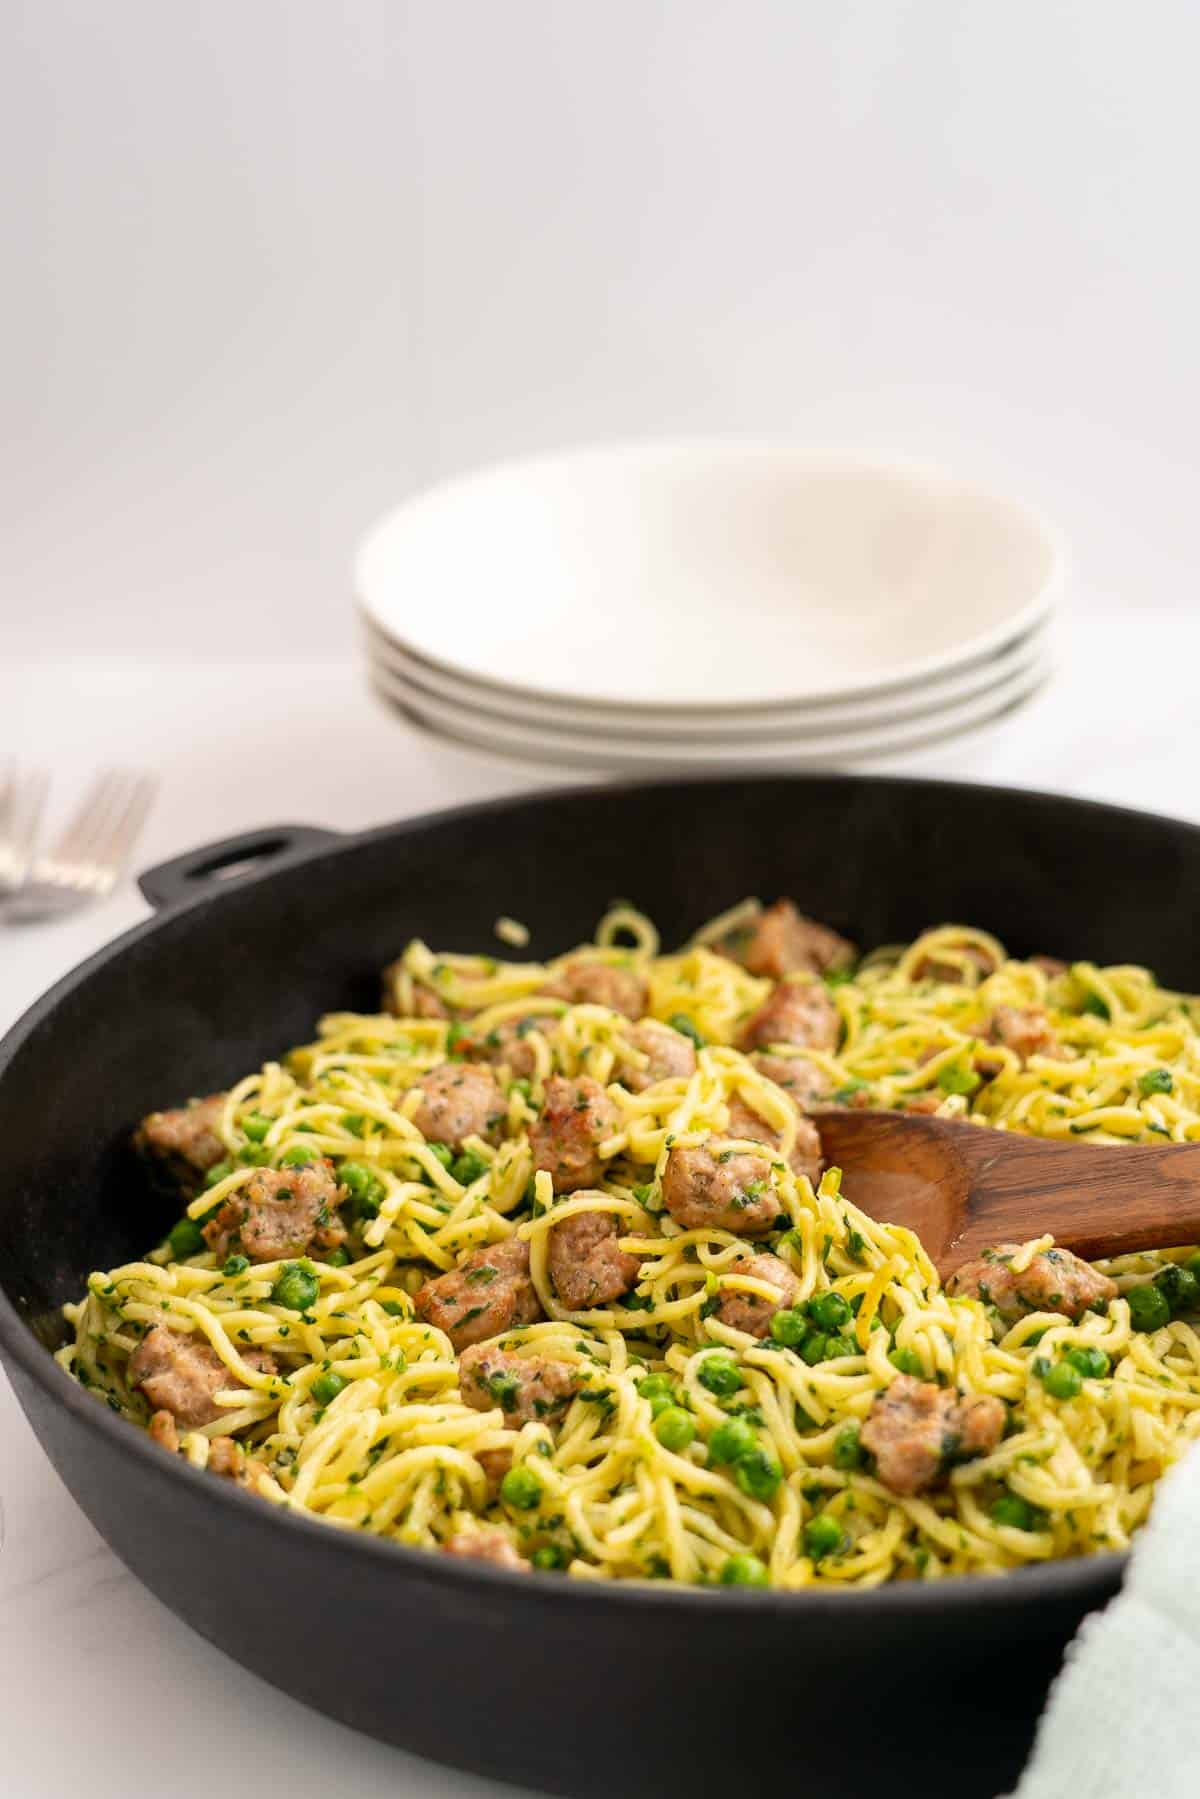 Golden Fried Spaghetti in a large skillet with sausage peas and spinach, serving bowls and cutlery in the background